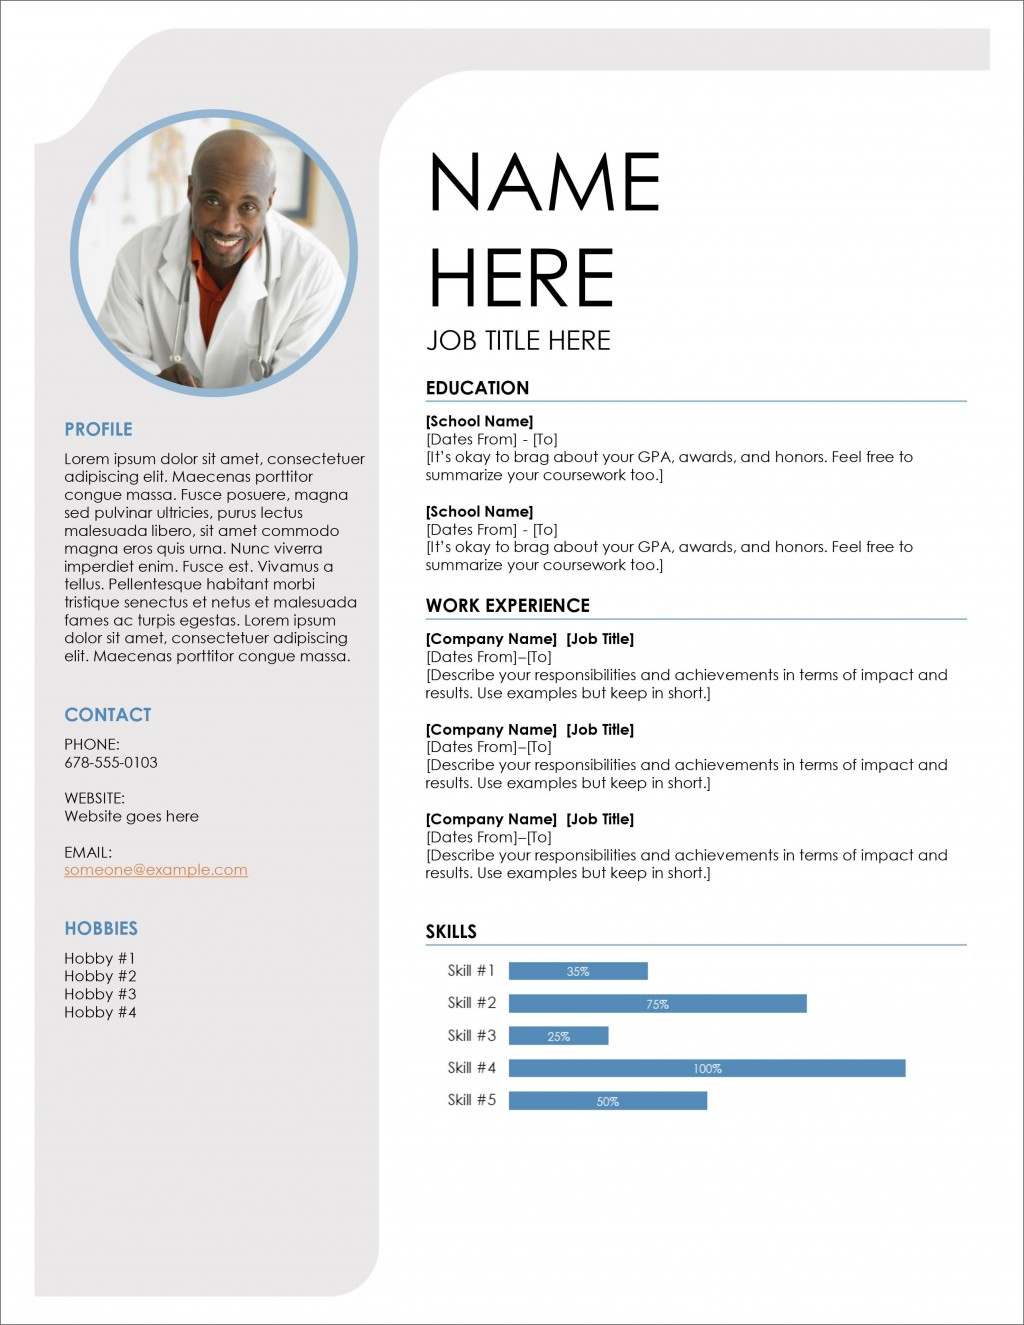 006 Remarkable Resume Template Word Free Download 2018 Photo  Modern CvLarge